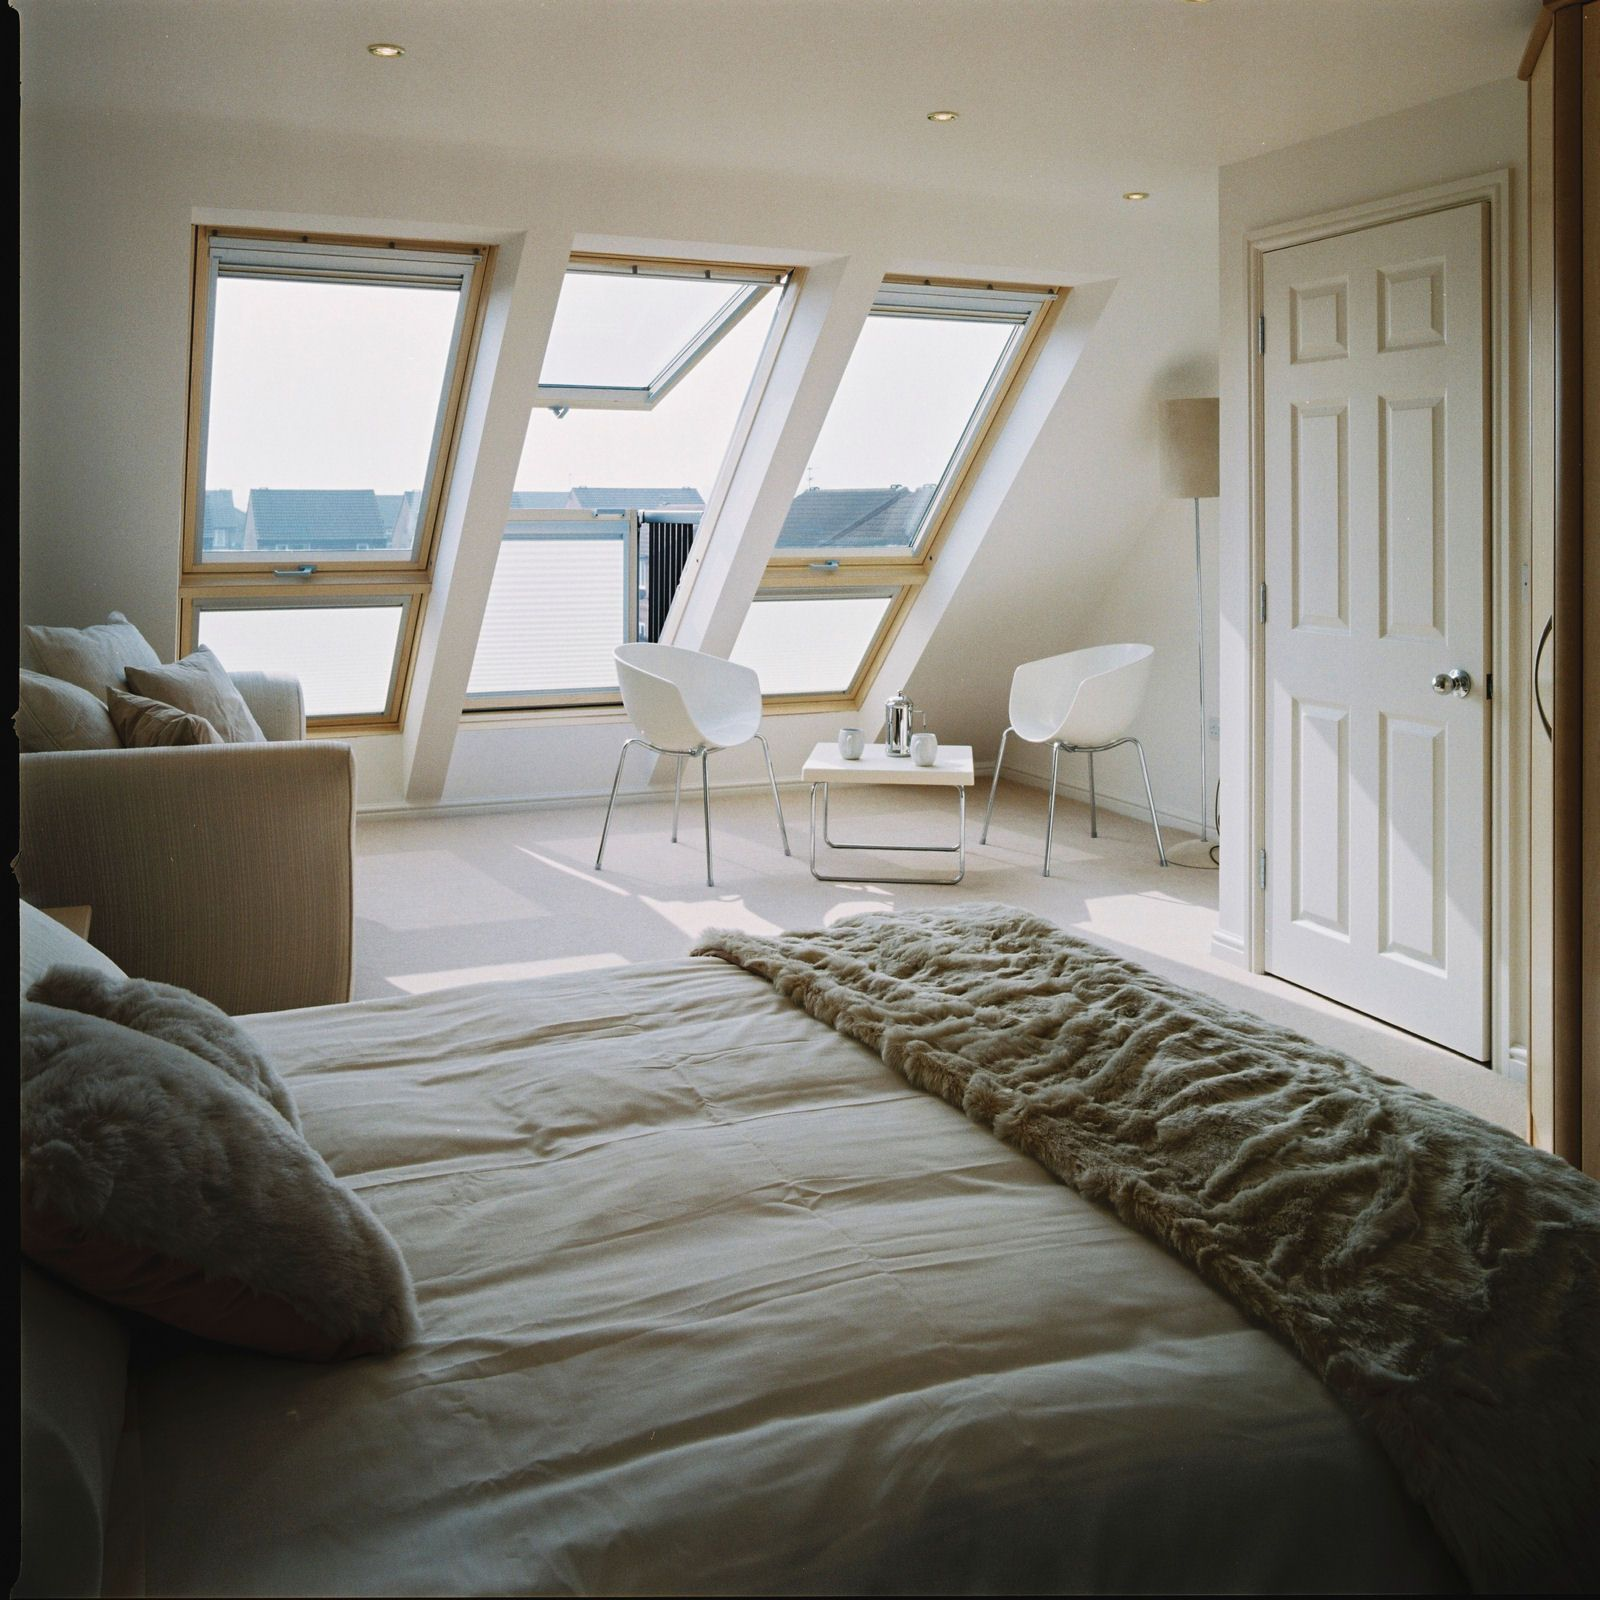 VELUX CABRIO balcony windows will wake you up gently with ...